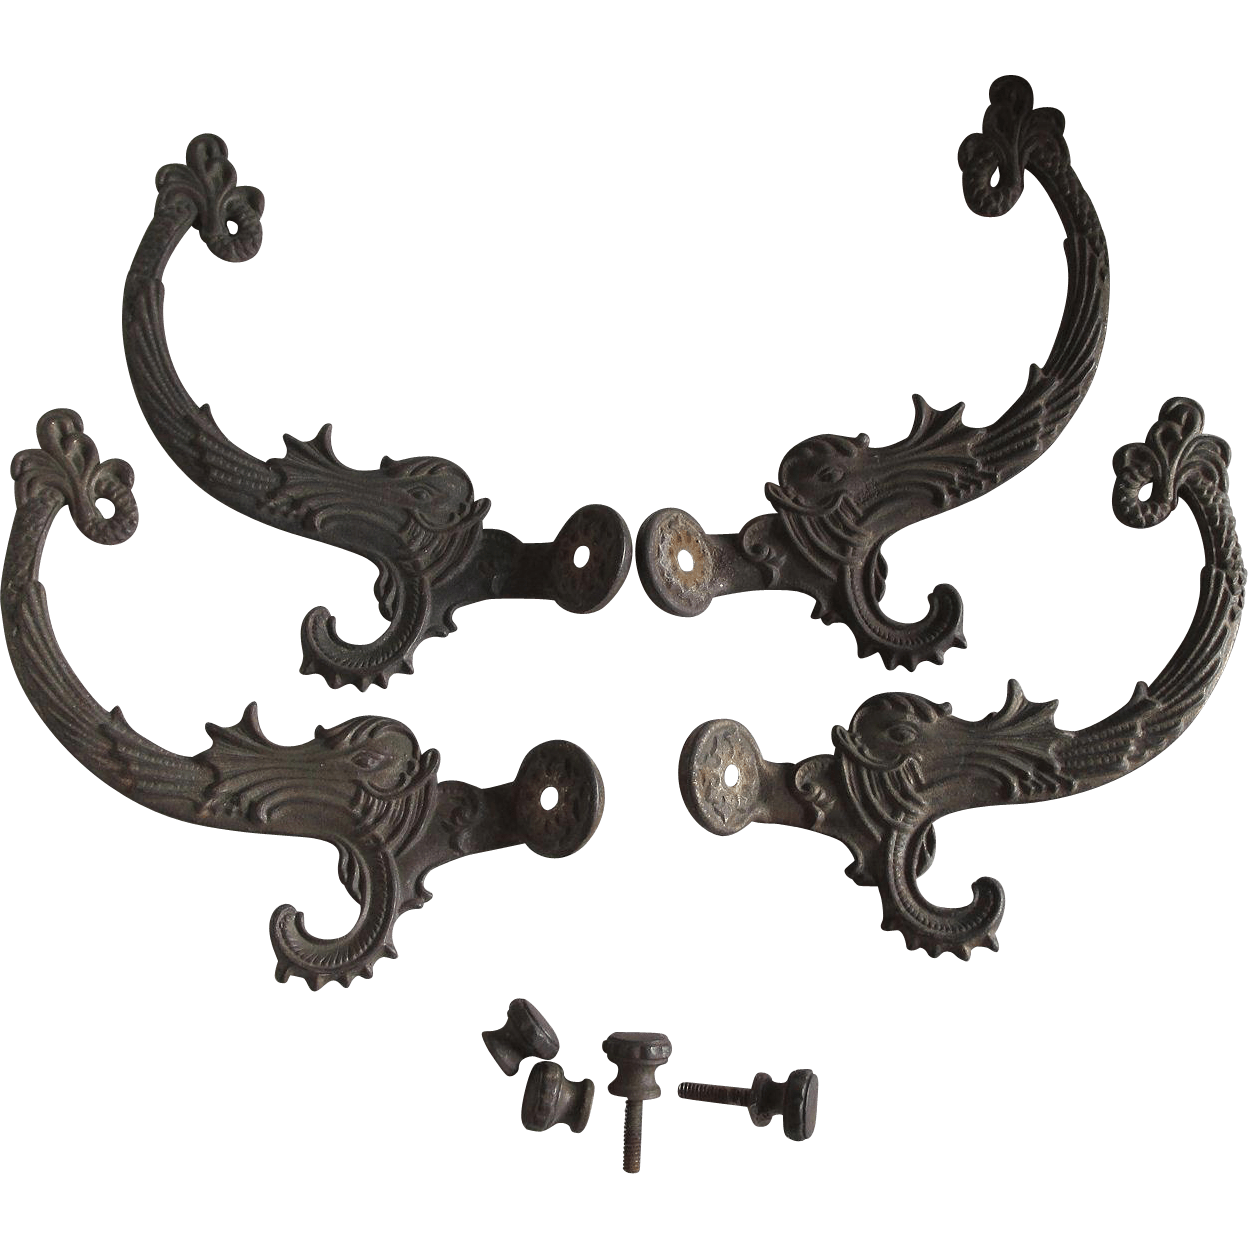 4 Victorian Gothic Dolphin Fish Coat Hooks Architectural